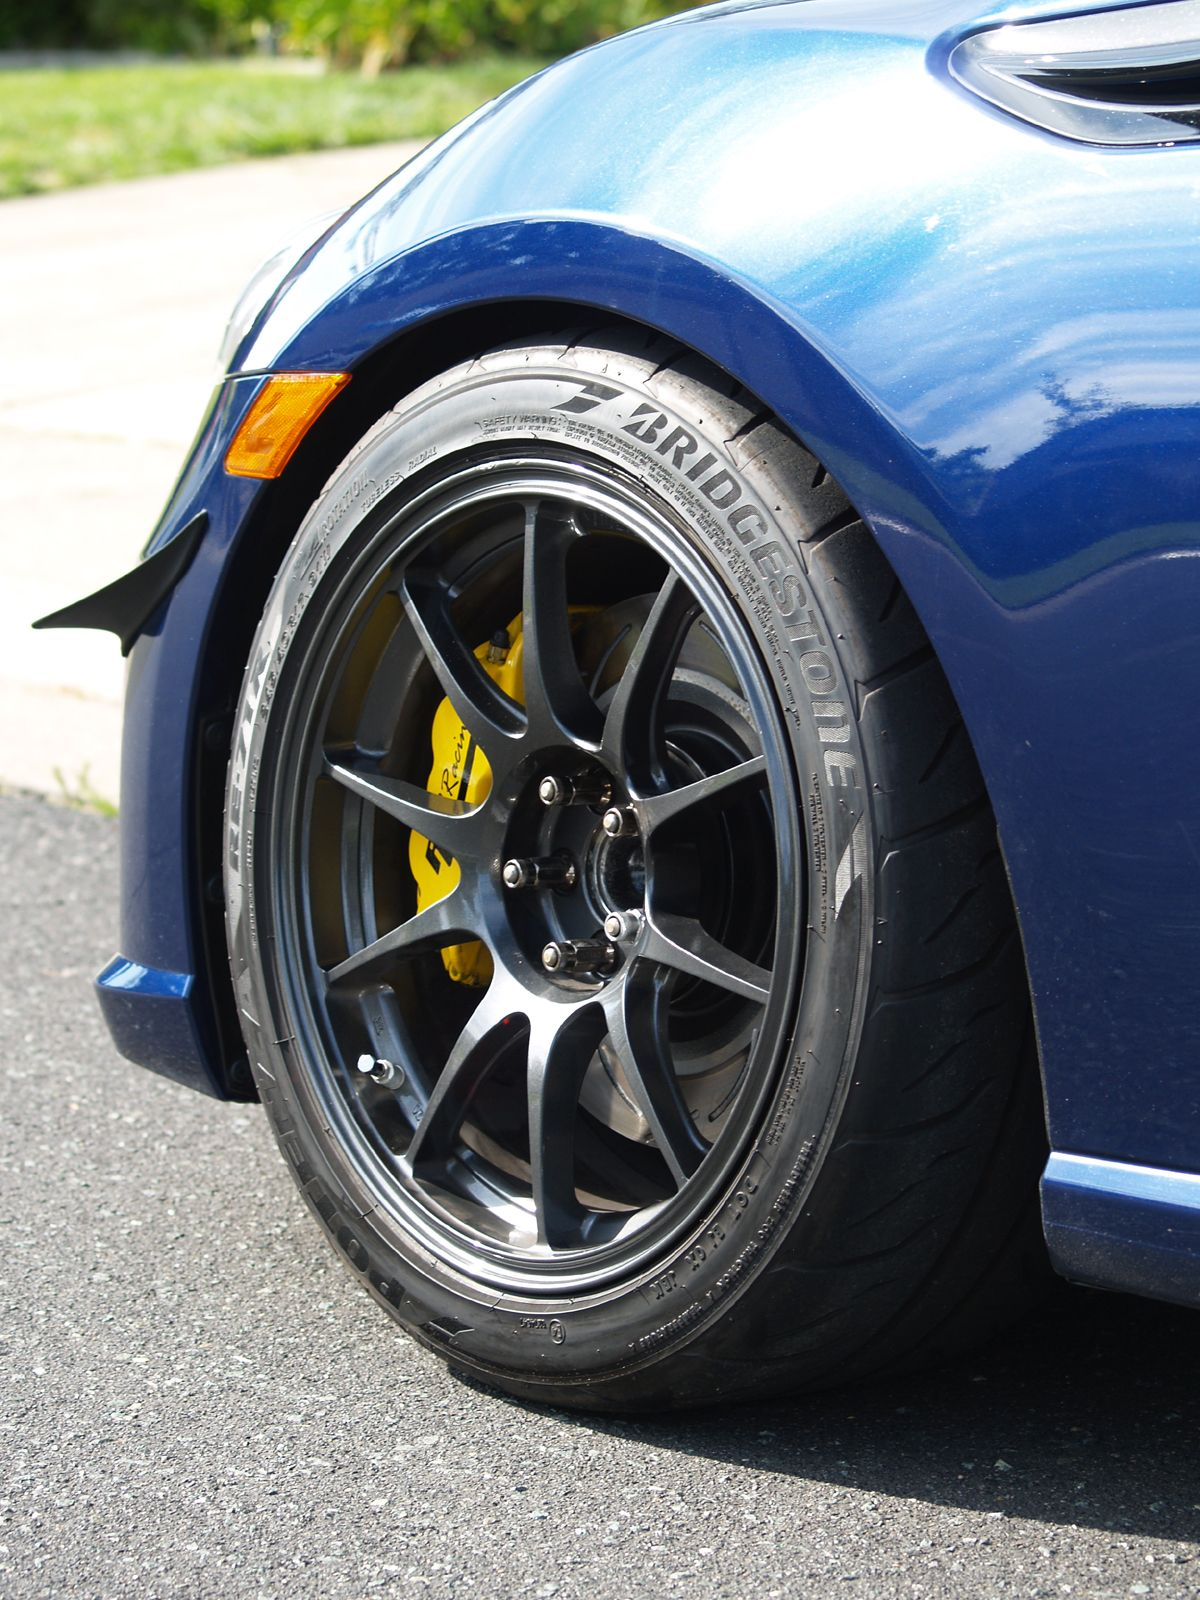 Rr racing brake development competition and street page 25 scion fr s forum